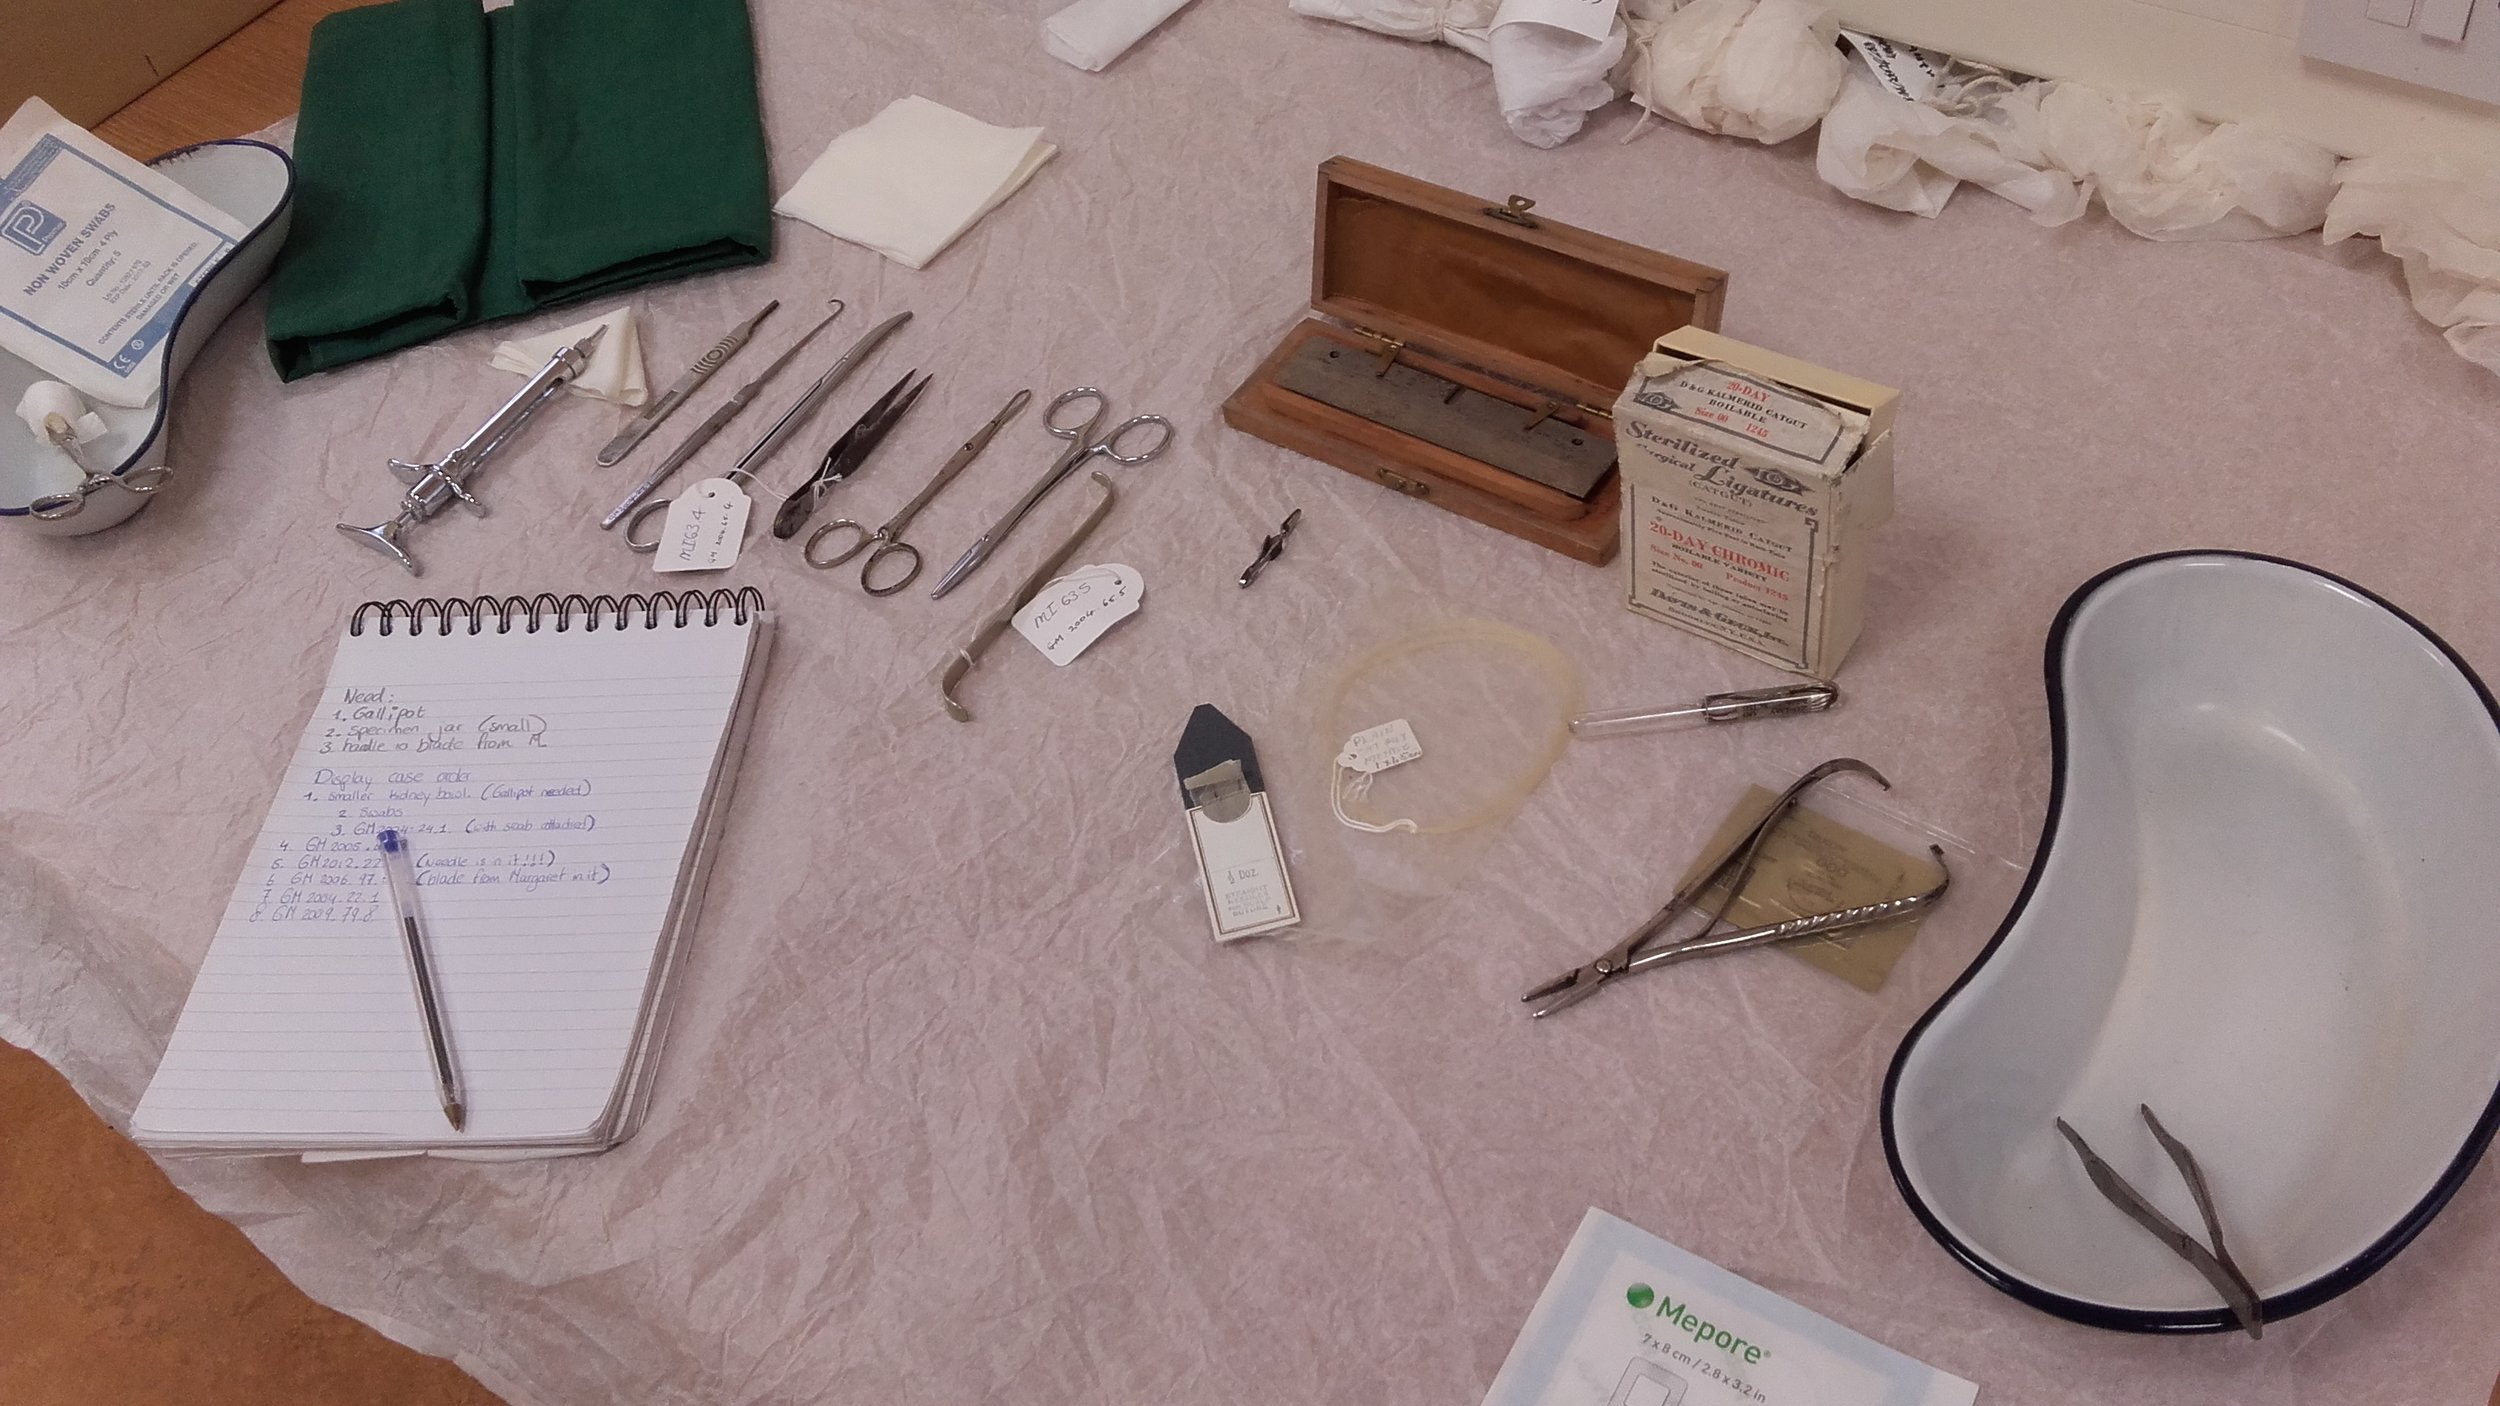 Various surgical tools and other items.